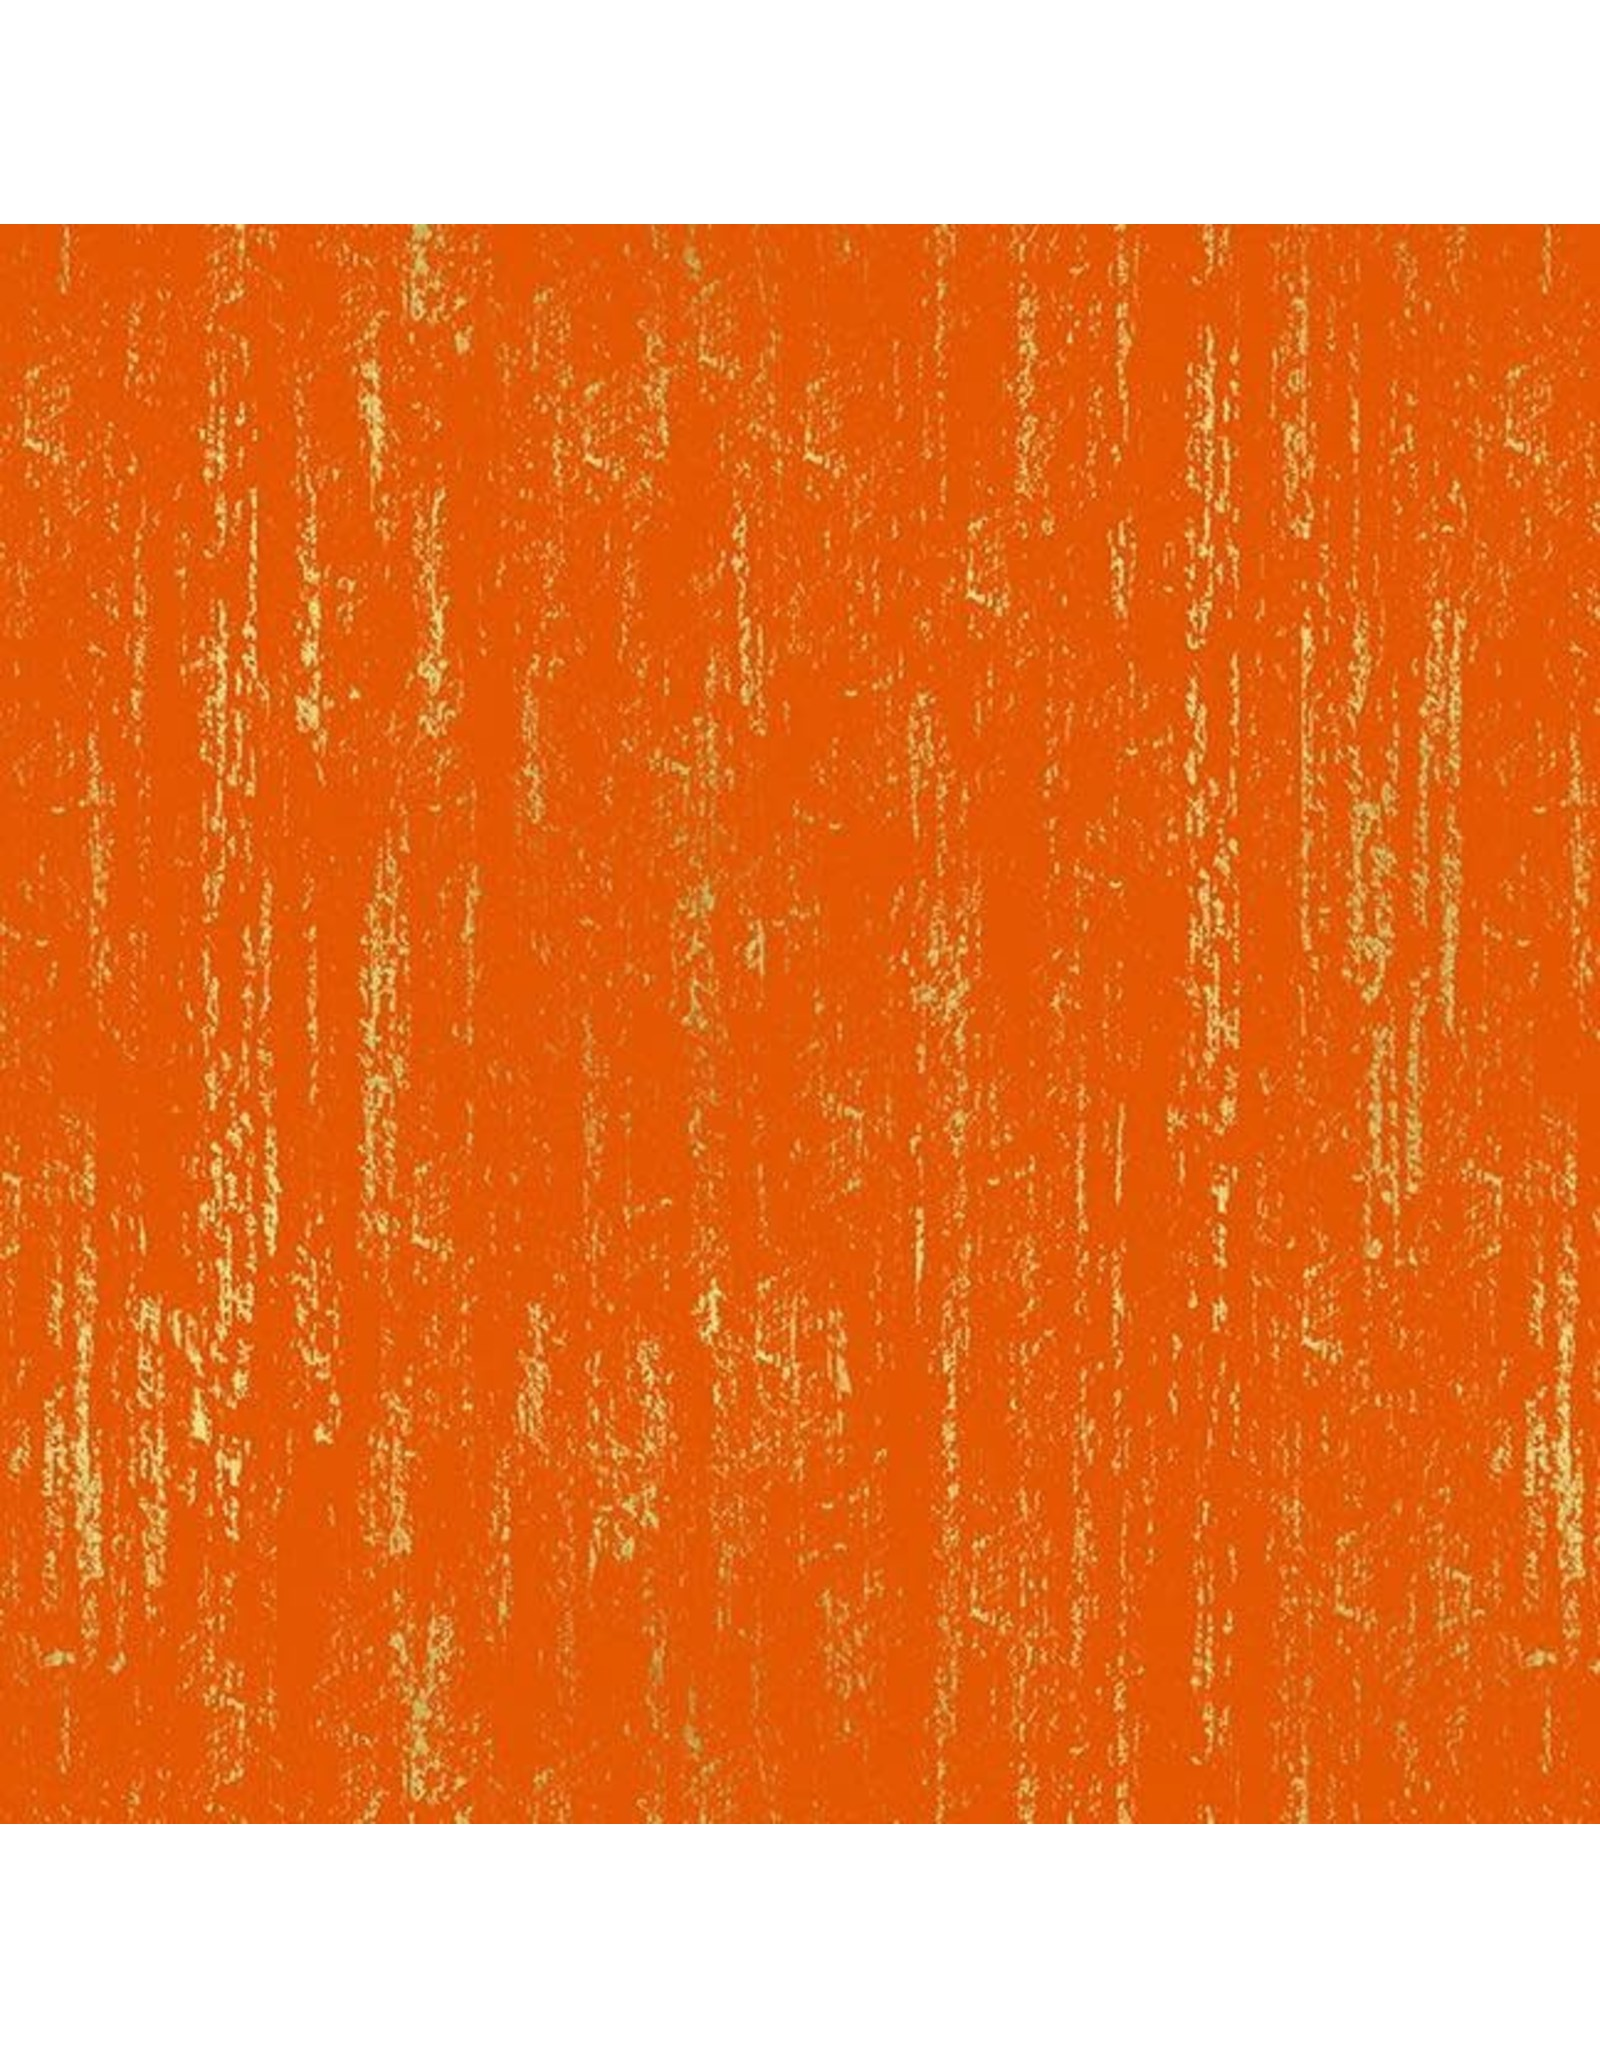 Sarah Watts ON SALE-Ruby Star Society, Brushed Crescent in Fire with Metallic, Fabric FULL-Yards